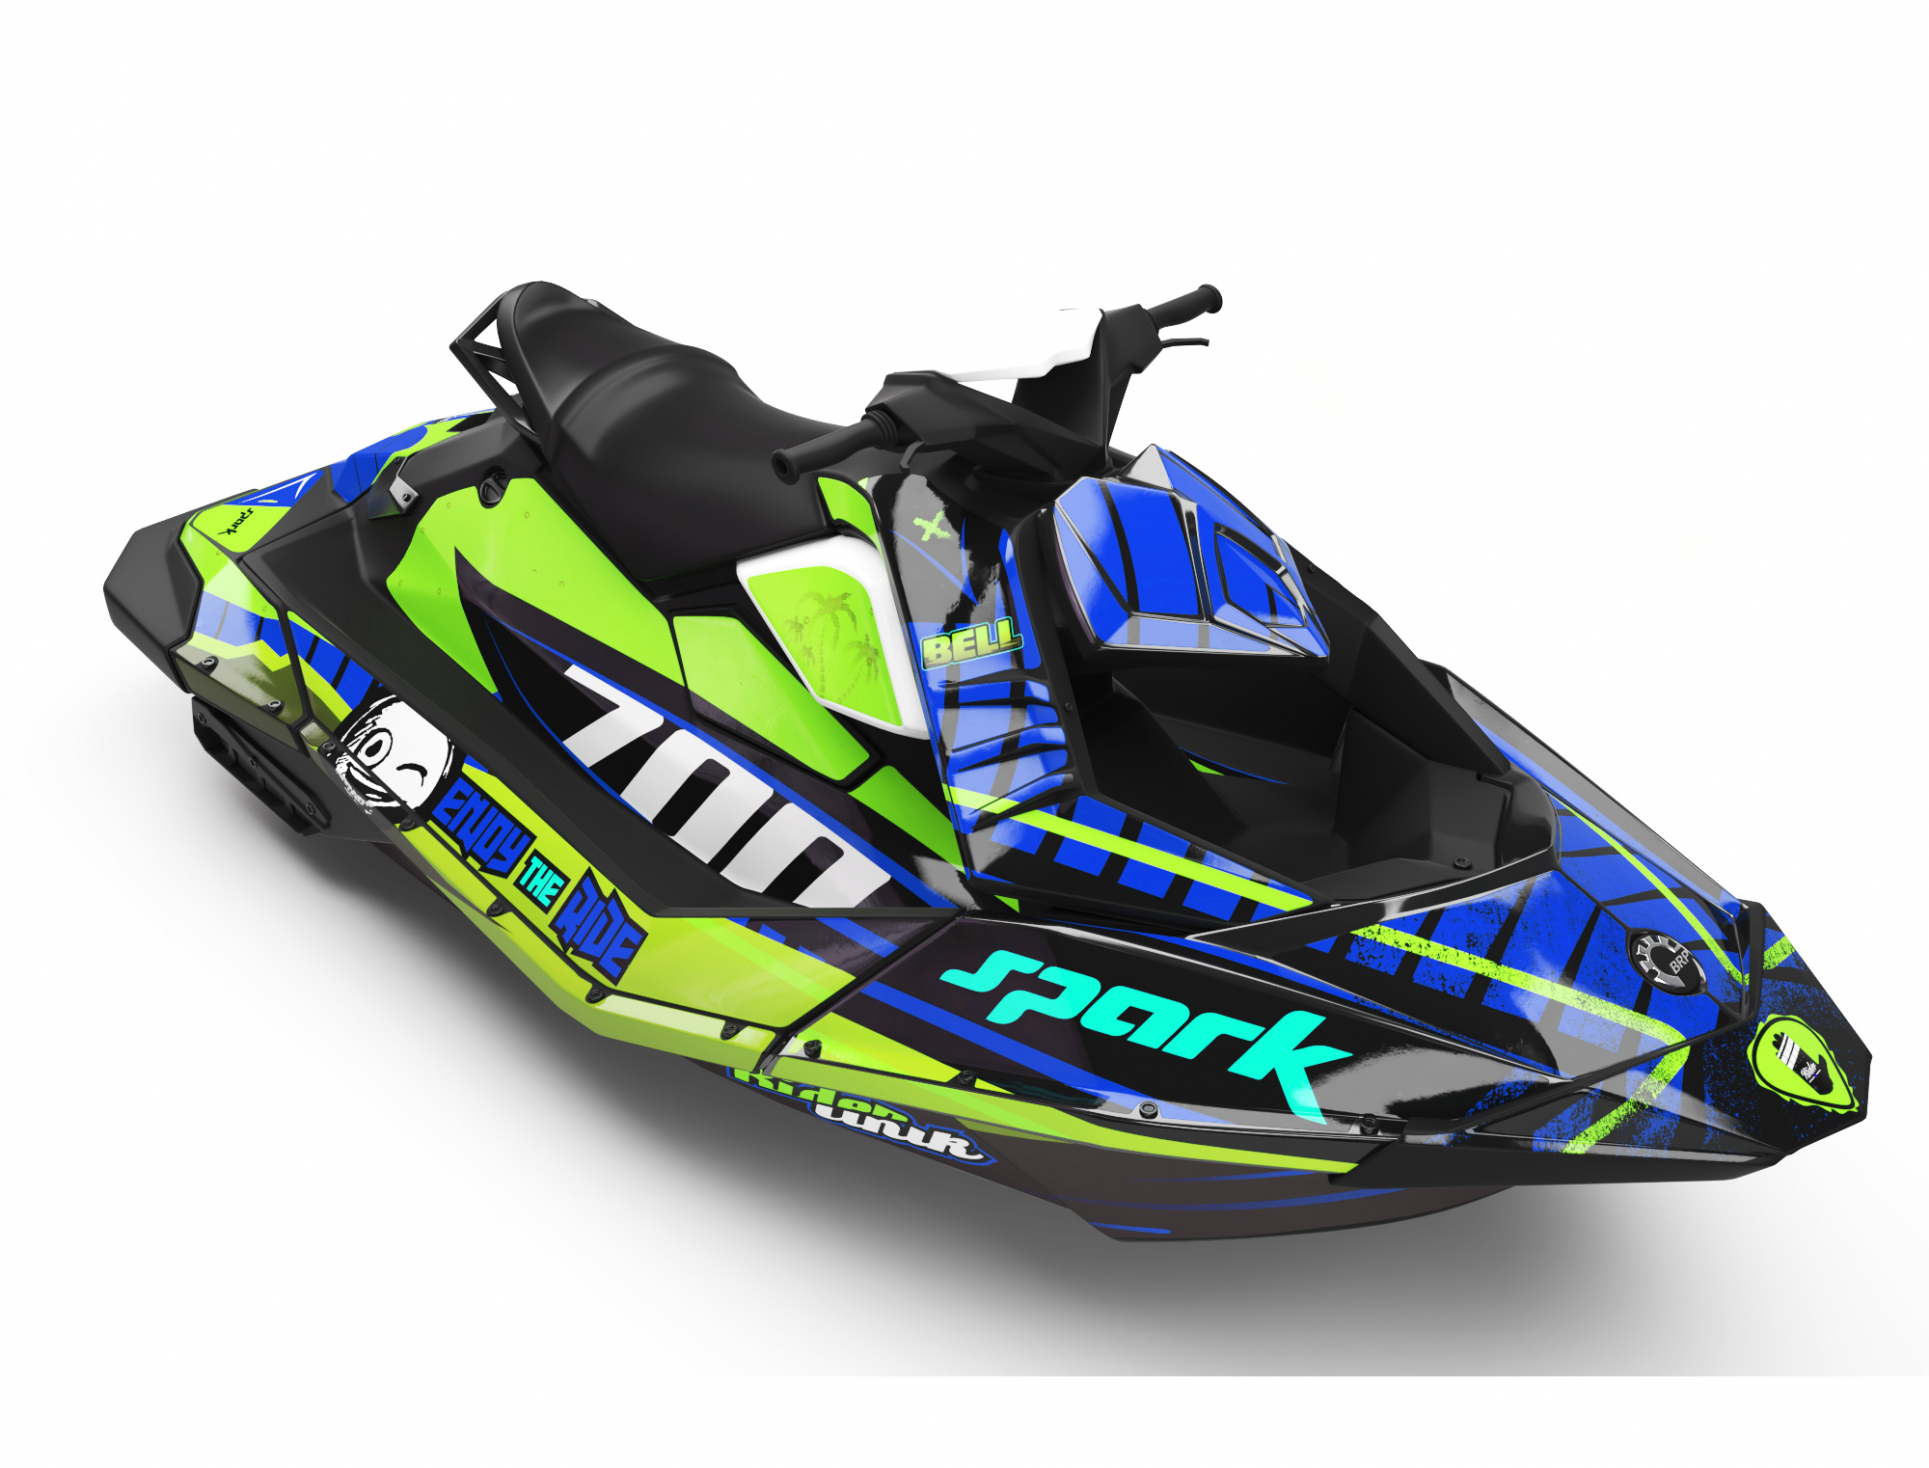 KIT DECO SEA-DOO SPARK ENJOY THE RIDE CUP VERT